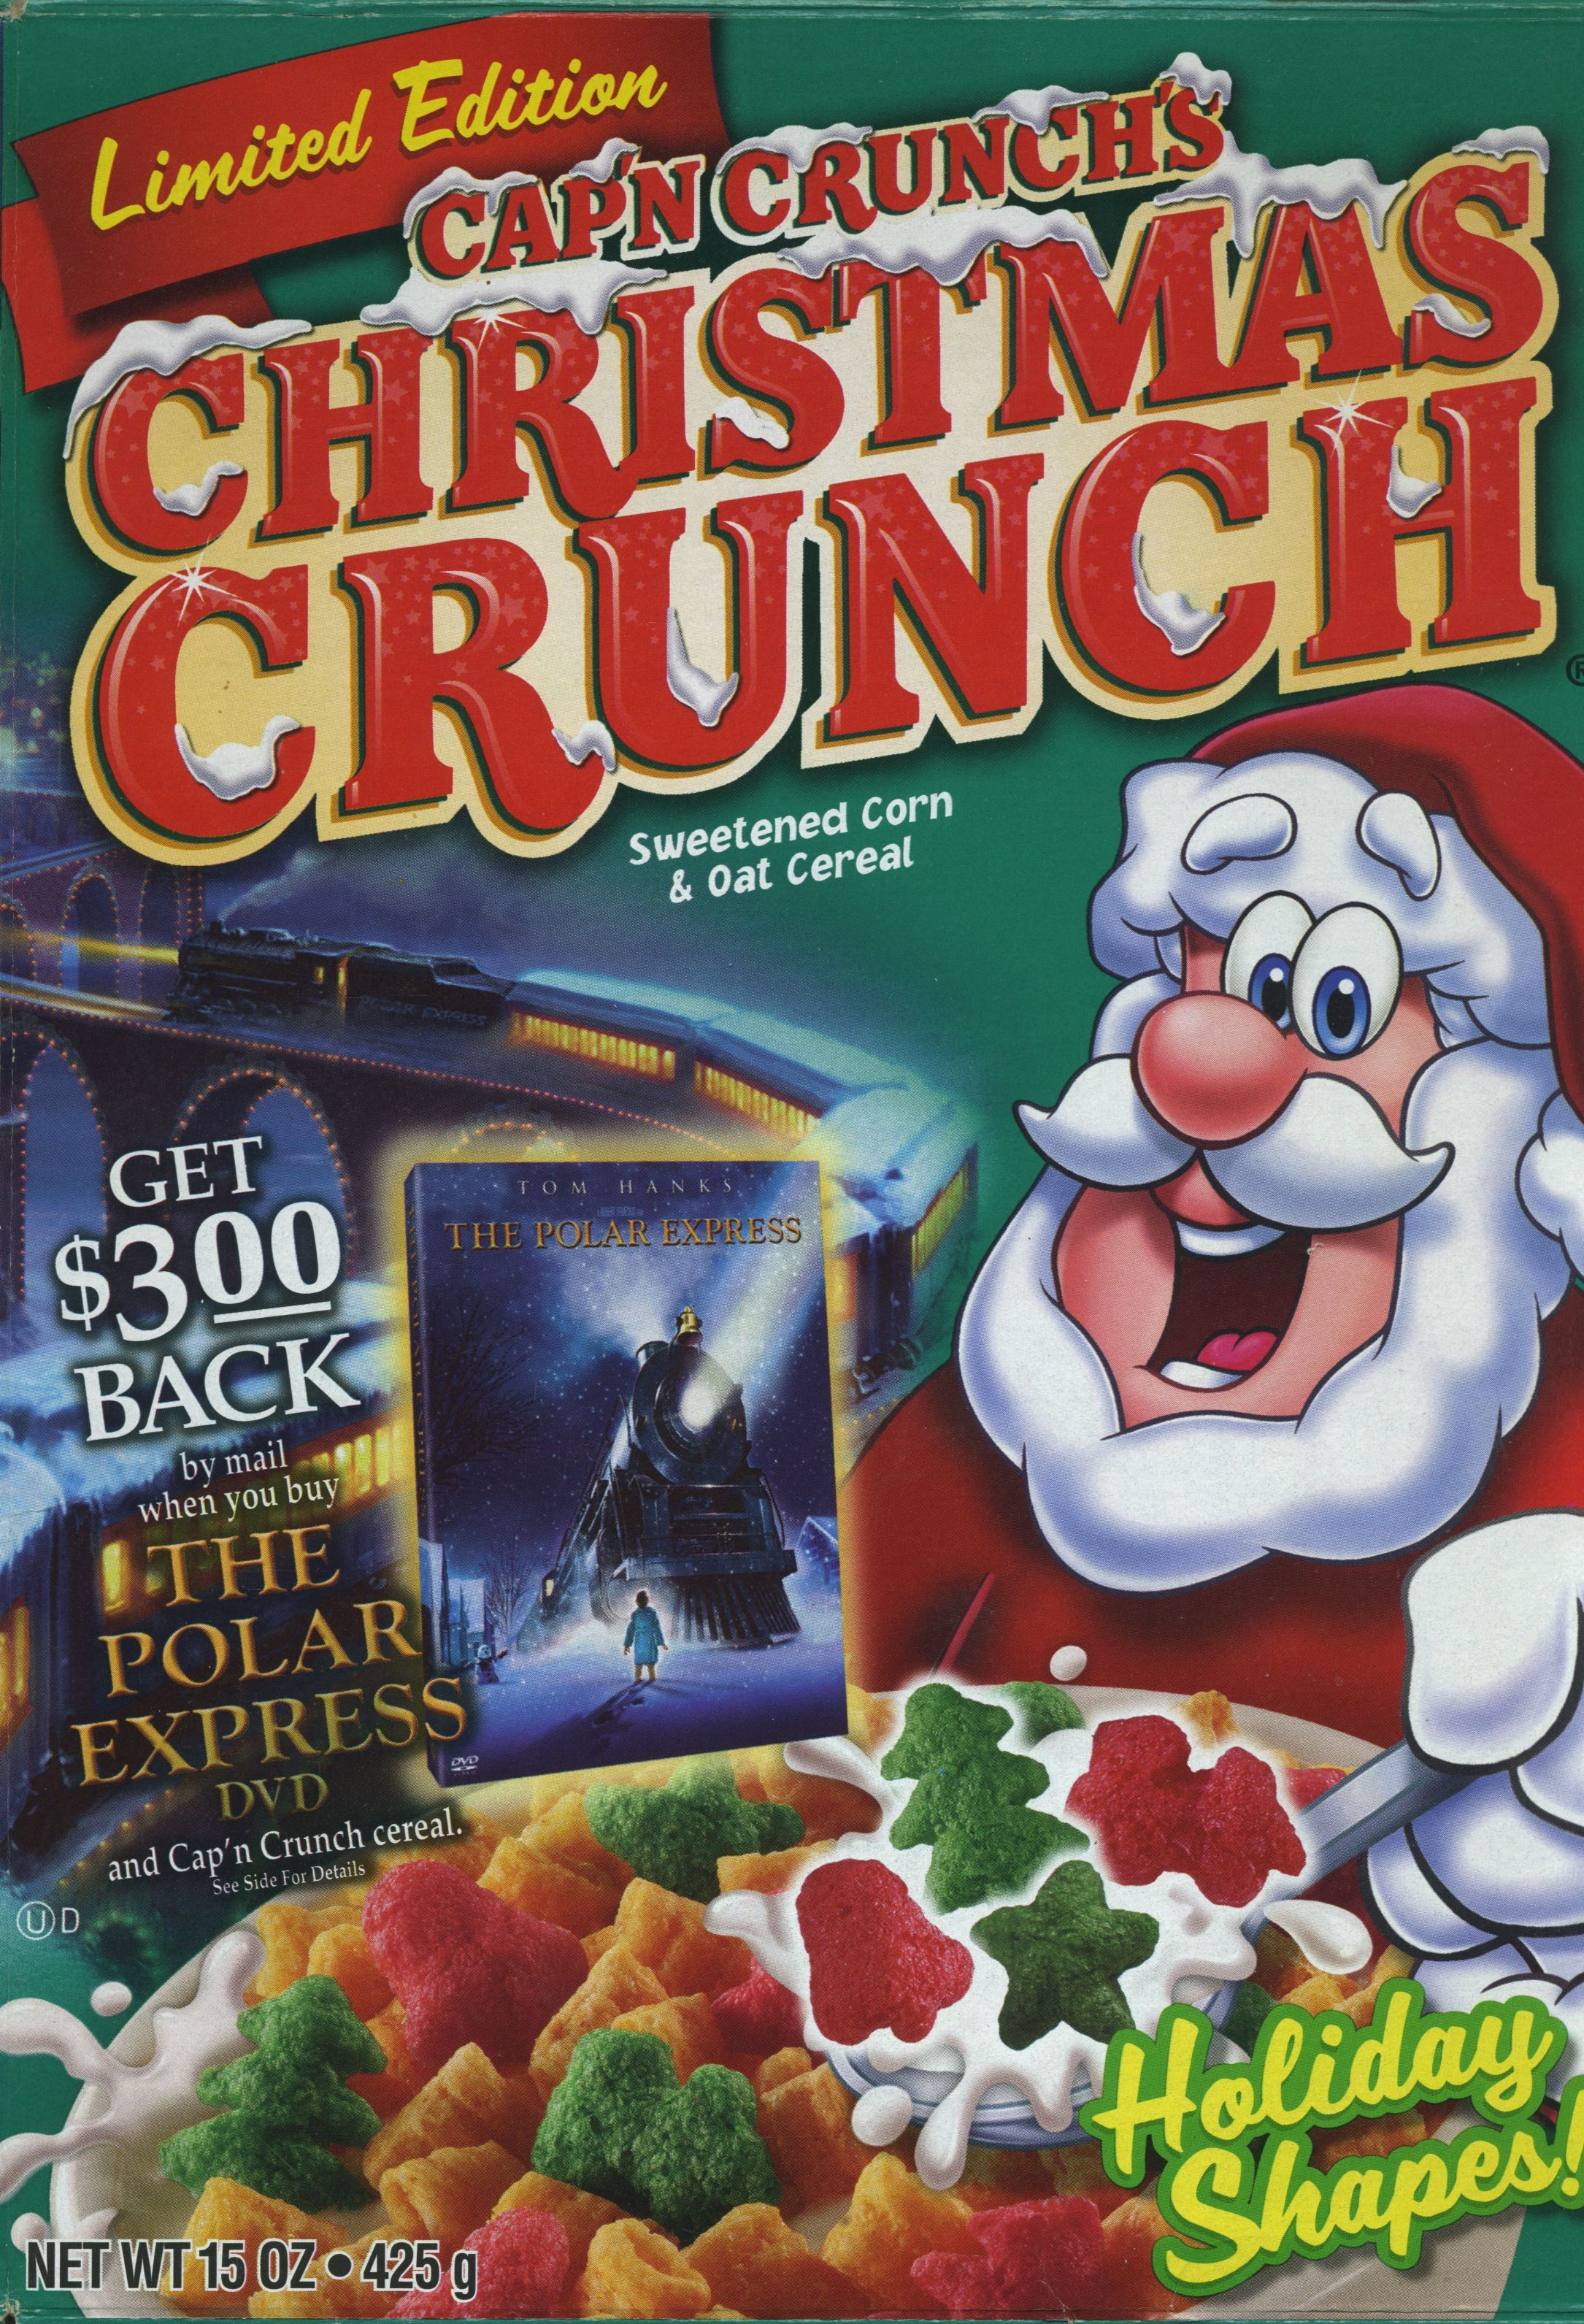 Christmas Crunch Cereal.Christmas Crunch 2005 Cereal Christmas Crunch Cereal